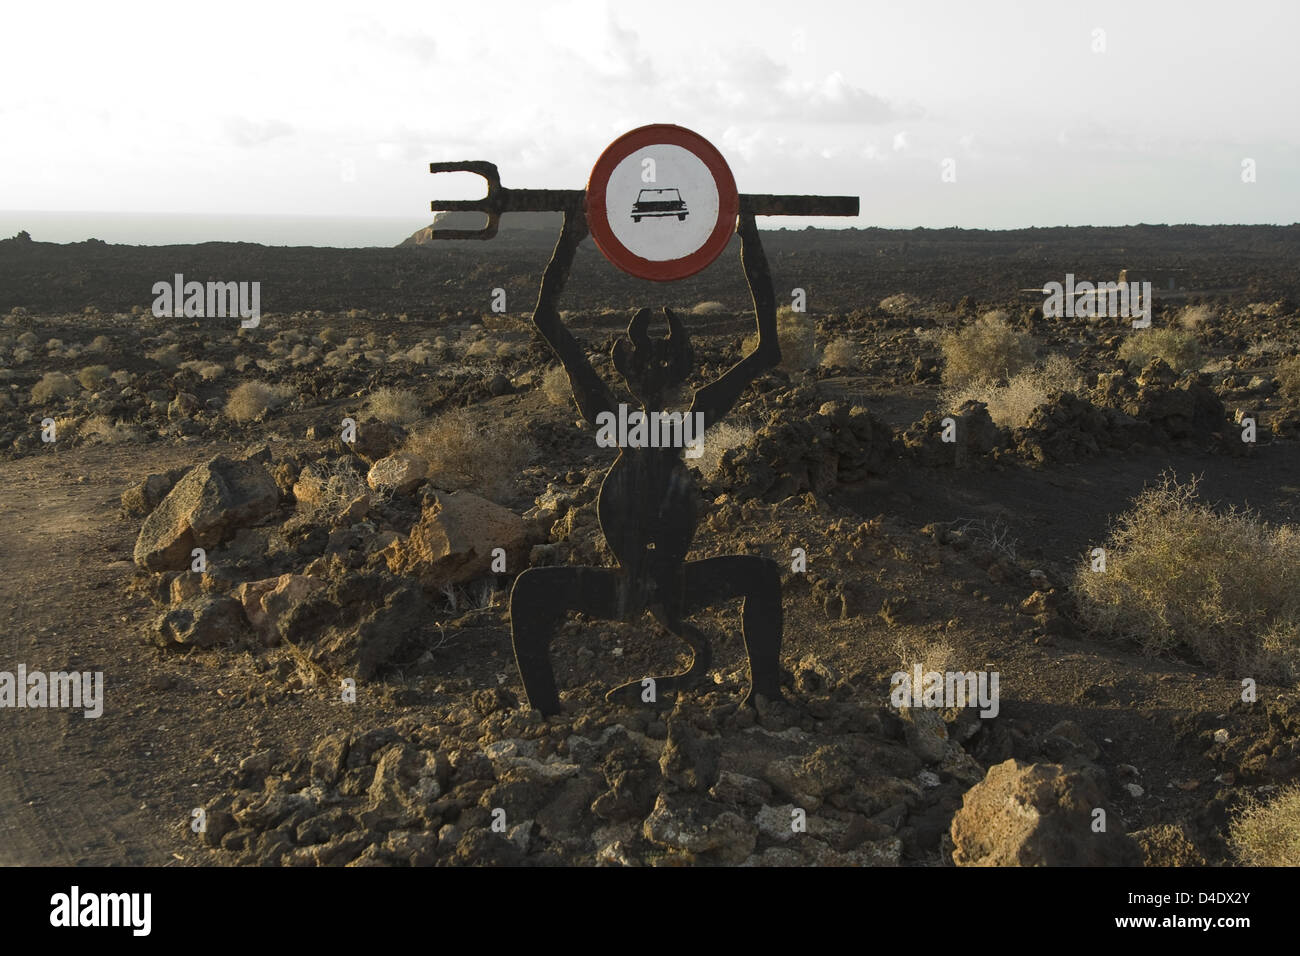 (dpa file) - A stylised devil holds a 'no entry for cars' sign at one of the entrances to Timanfaya National - Stock Image